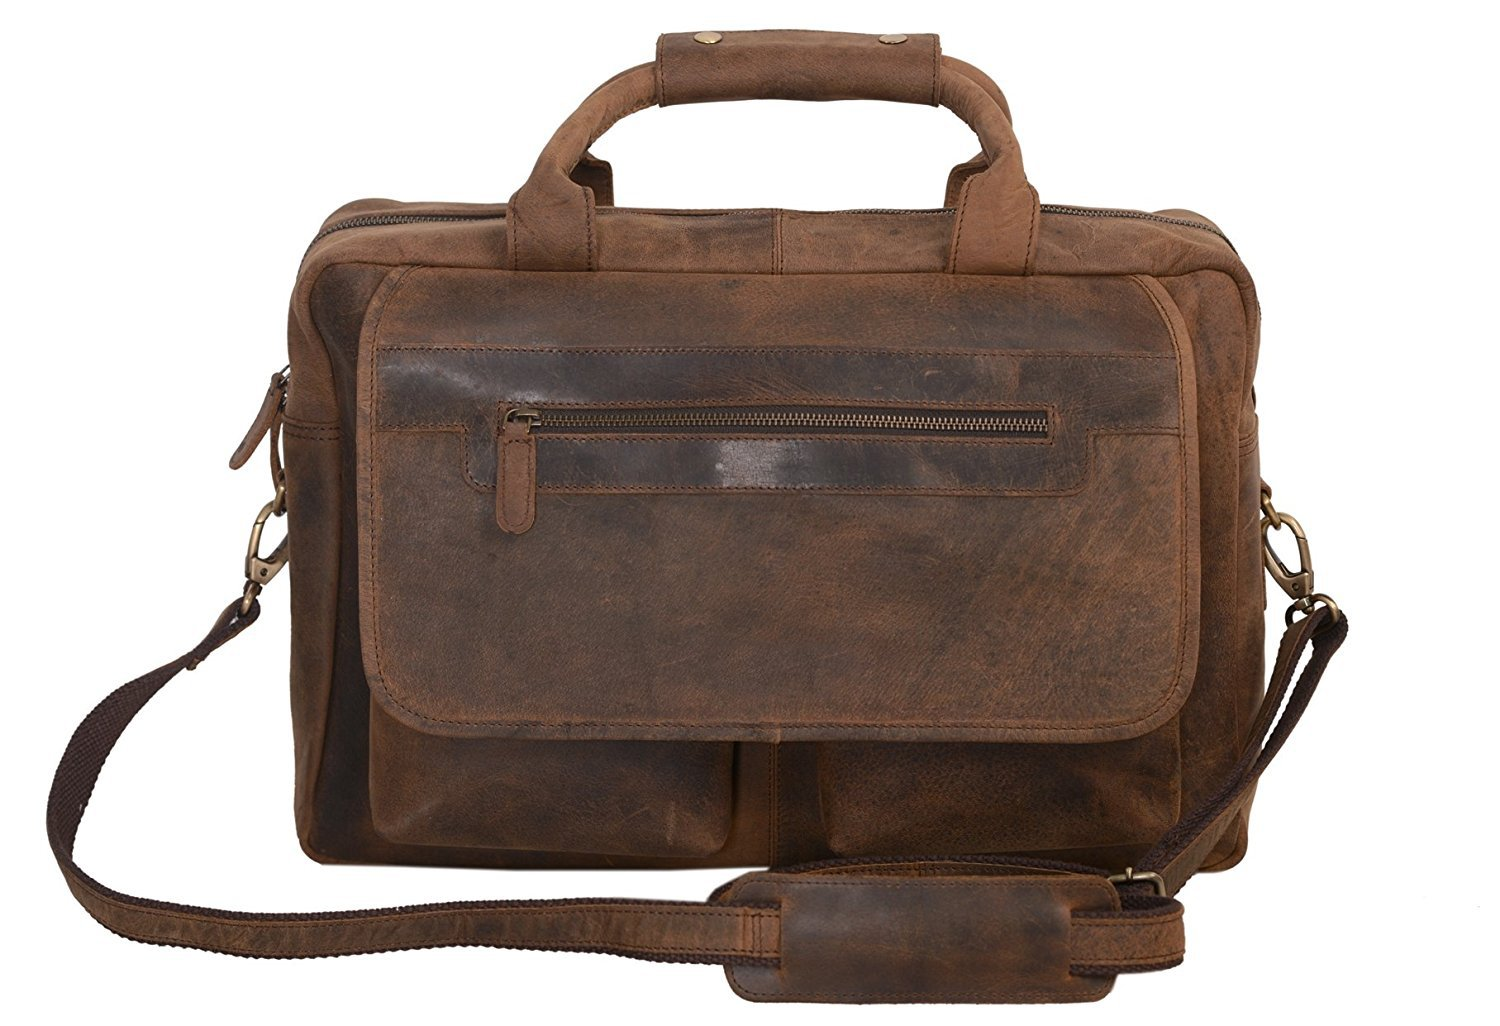 KomalC 16 Inch Retro Buffalo Hunter Vintage Leather Laptop Messenger Bag Office Briefcase College Bag for Men and Women/Fits Upto 15.6 Inch Laptop